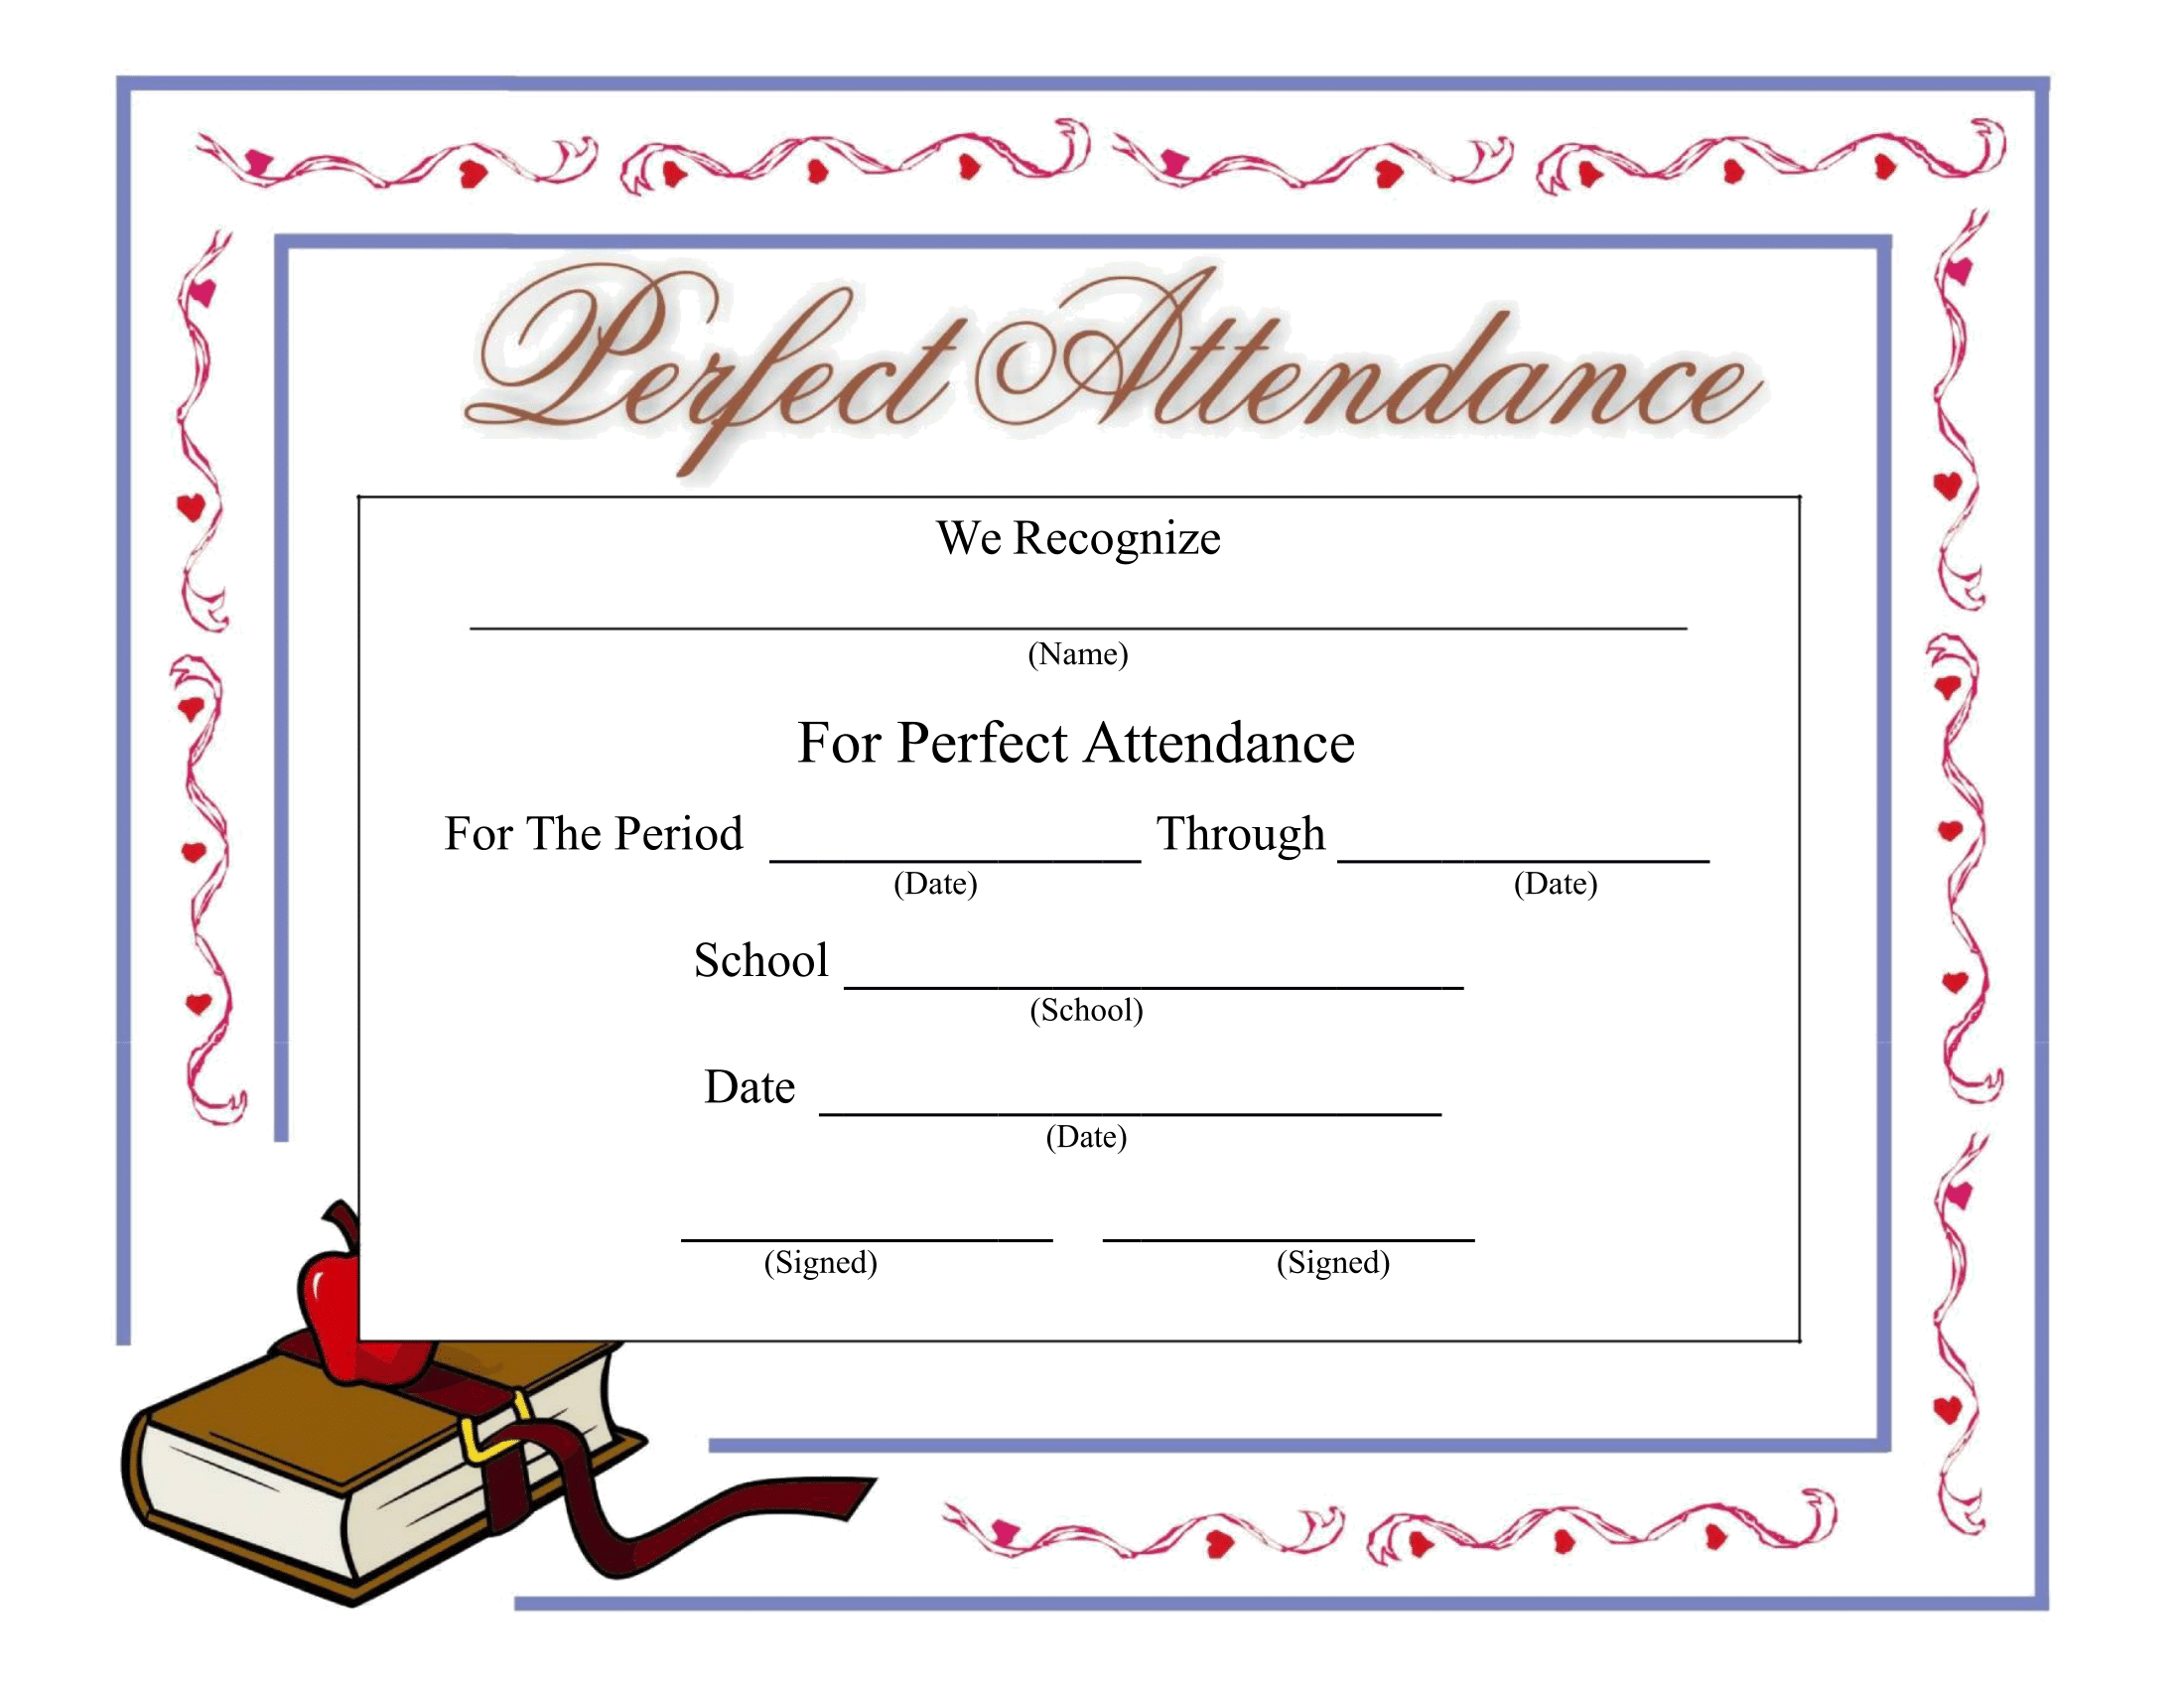 Perfect Attendance Certificate Download A Free Template